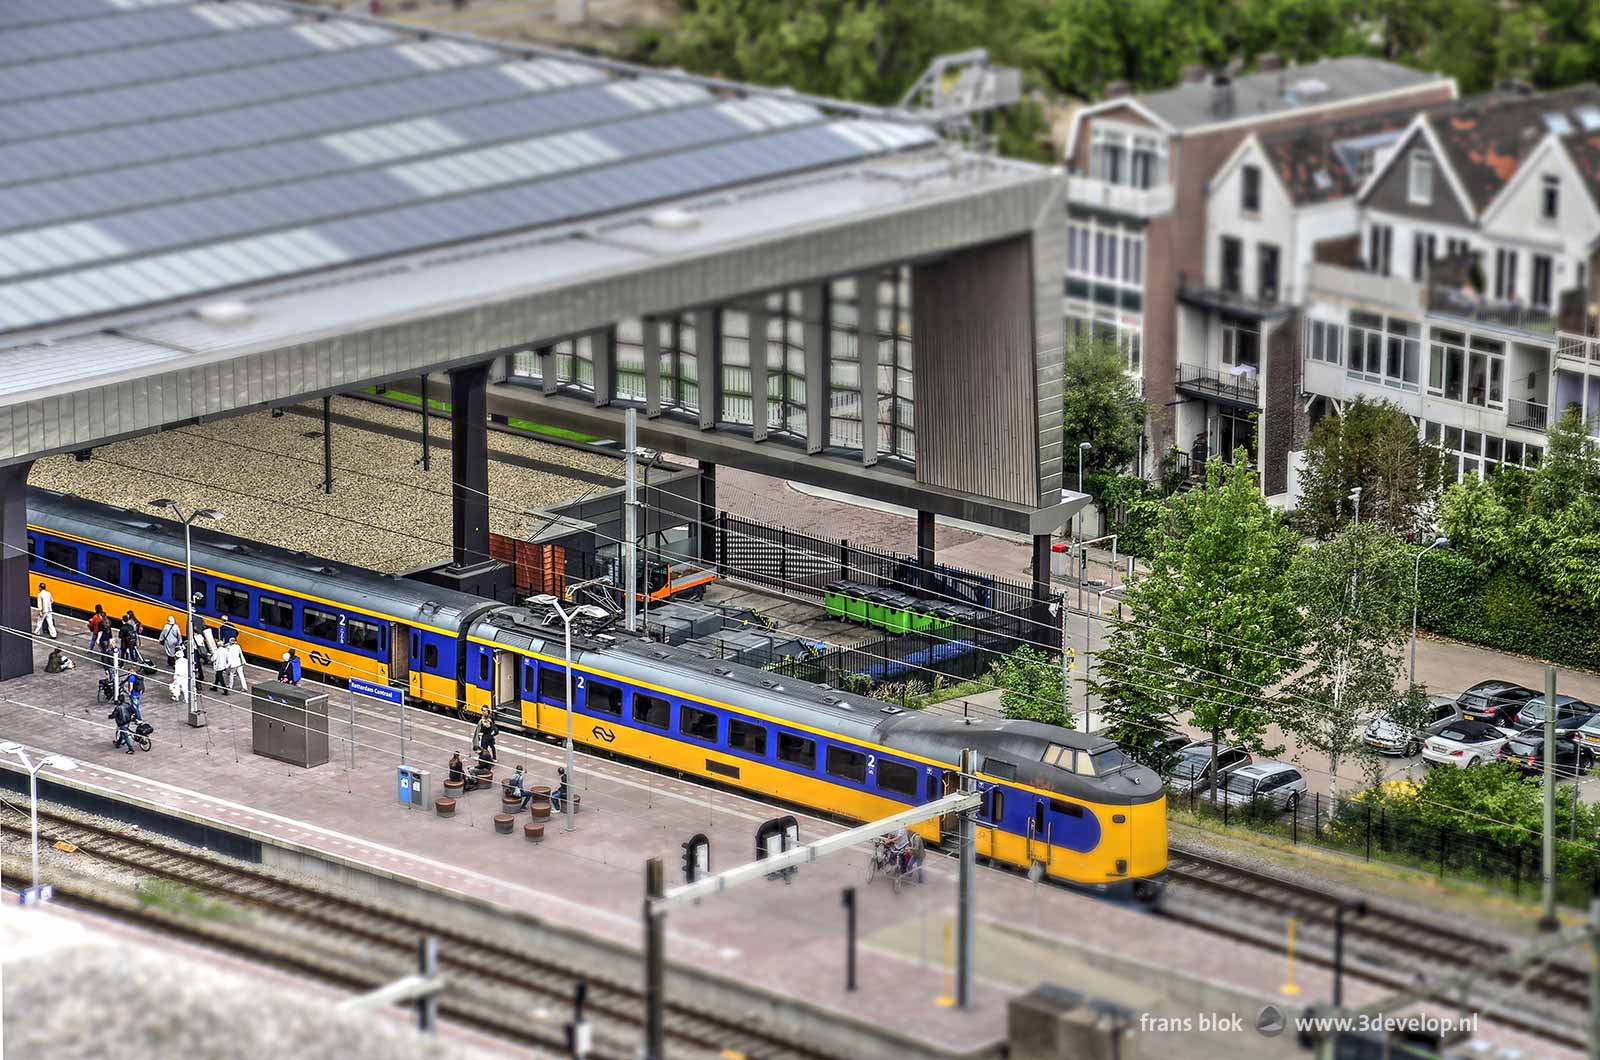 The Miniworld or Madurodam effect on a photo of Rotterdam Central Station featuring a yellow bleu Dutch Railways train